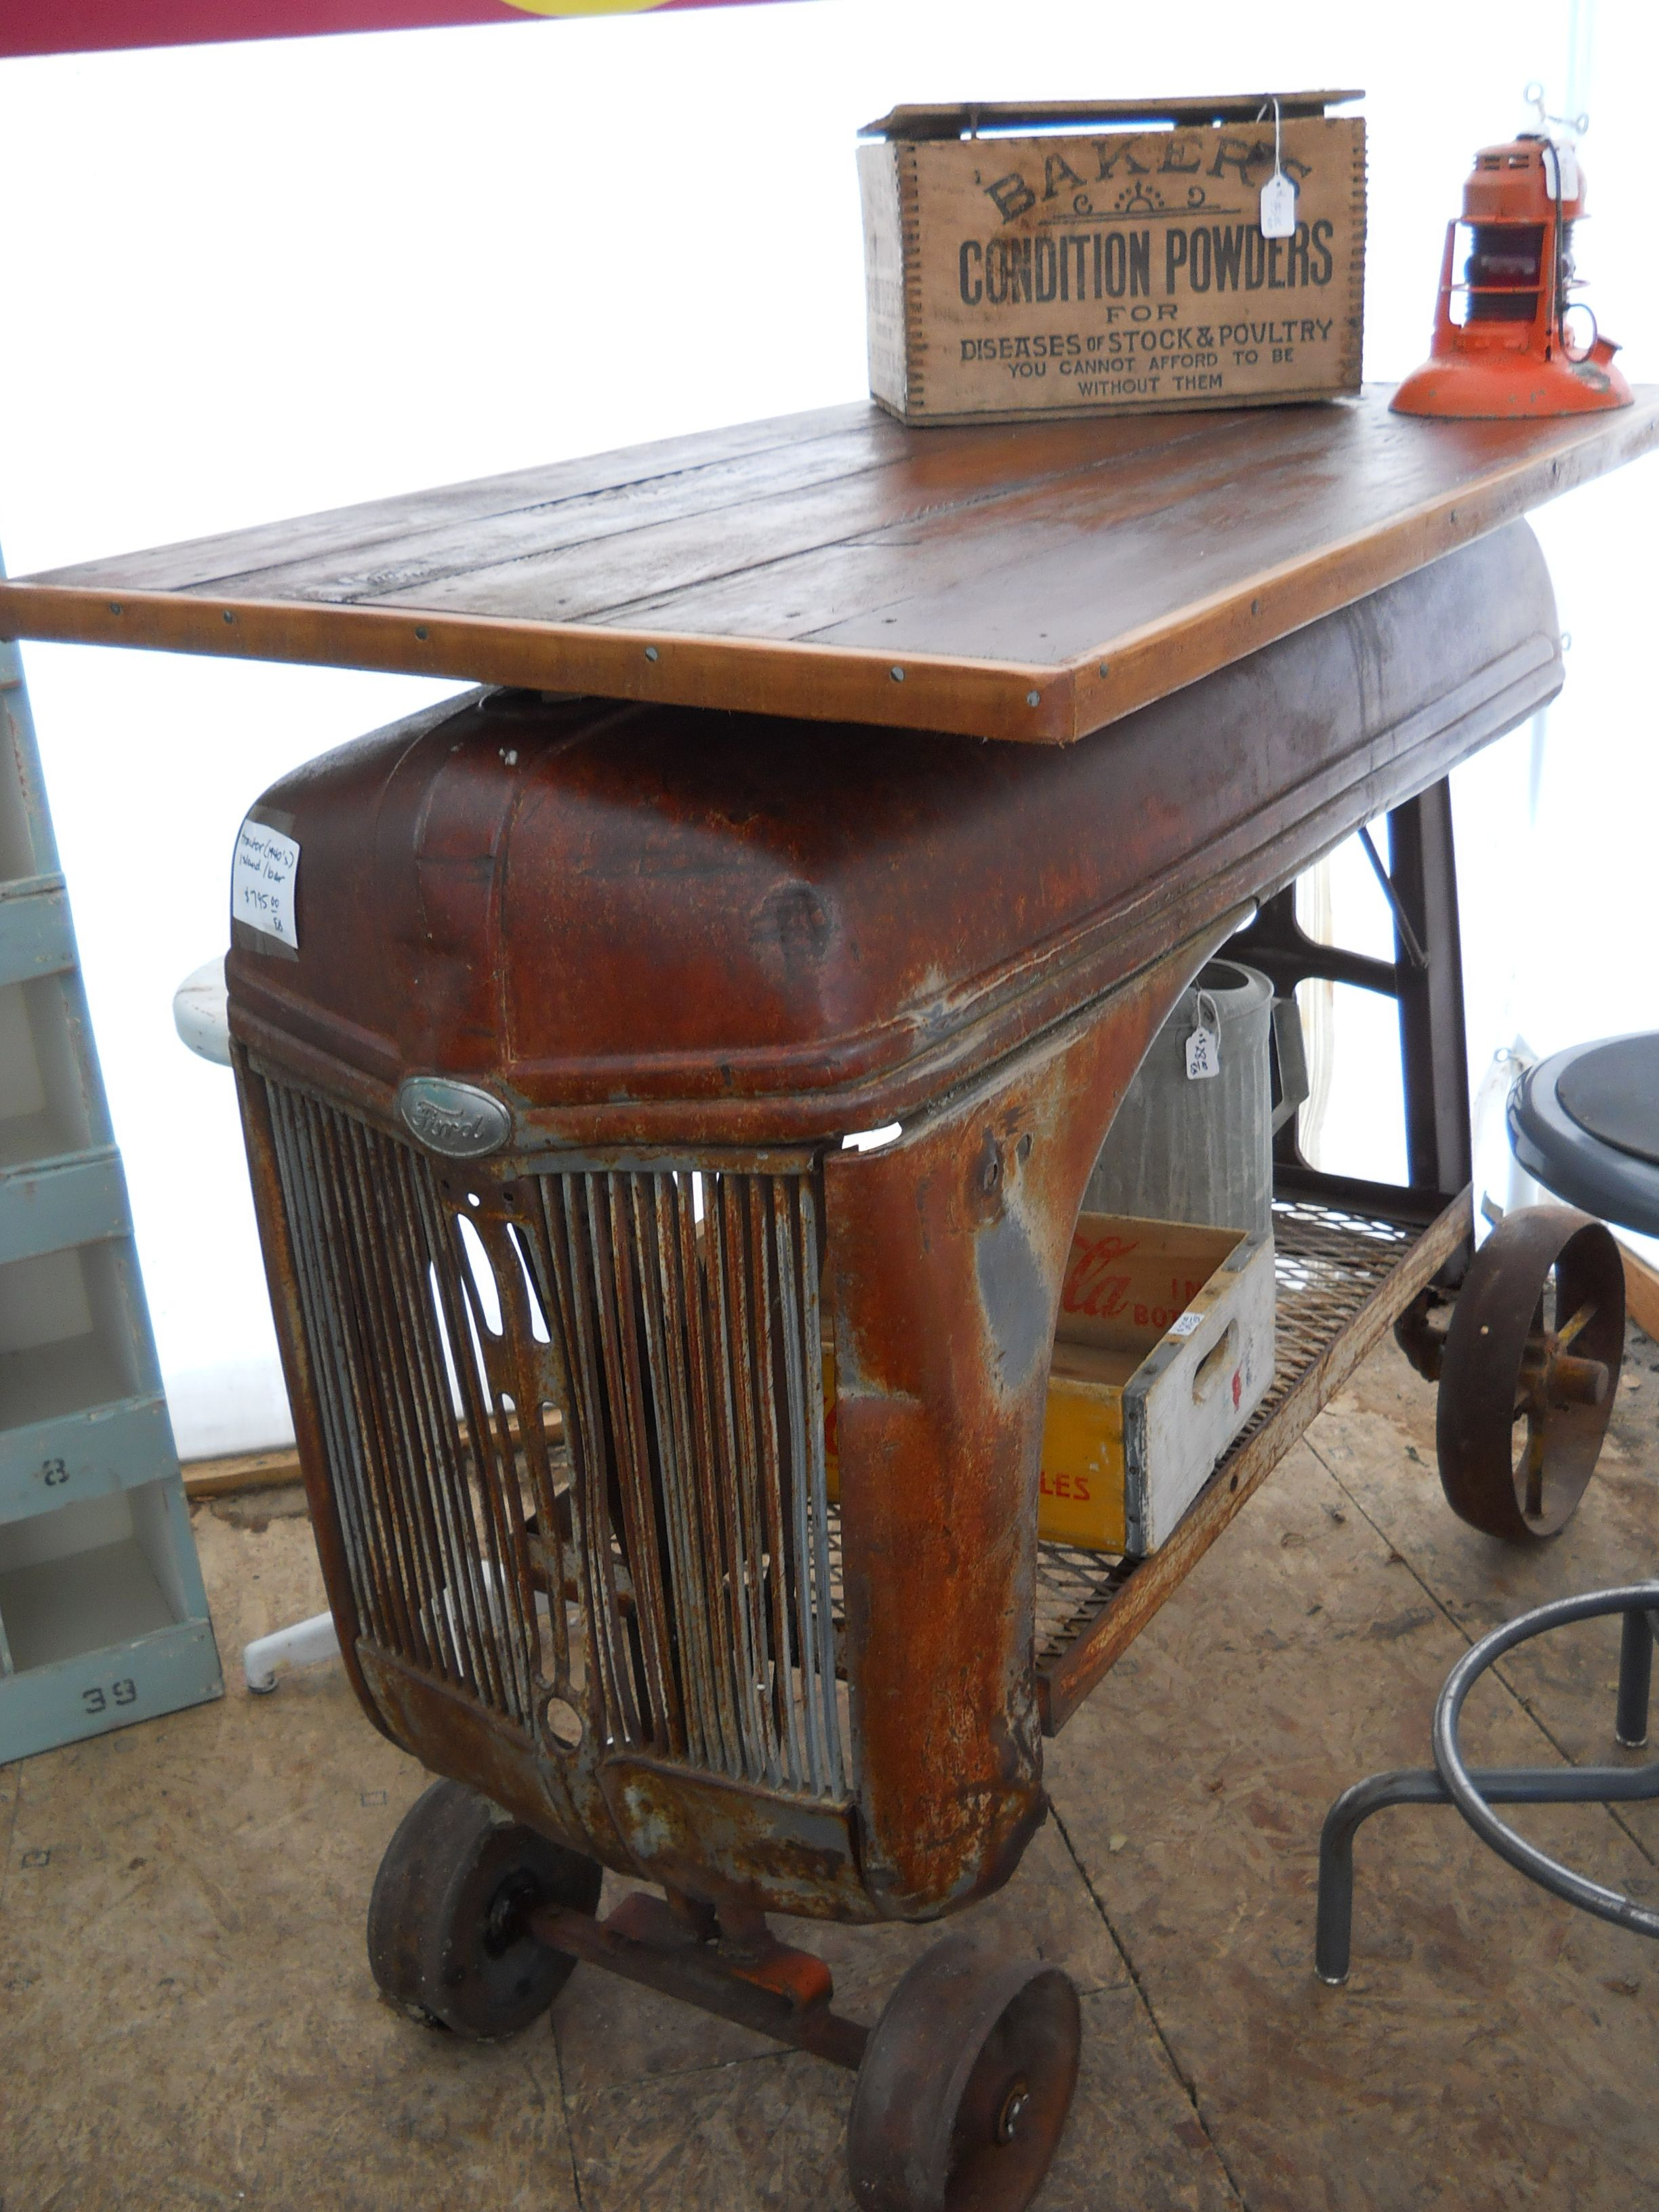 Amazing tractor kitchen island on wheels 1940 s Ford tractor hood